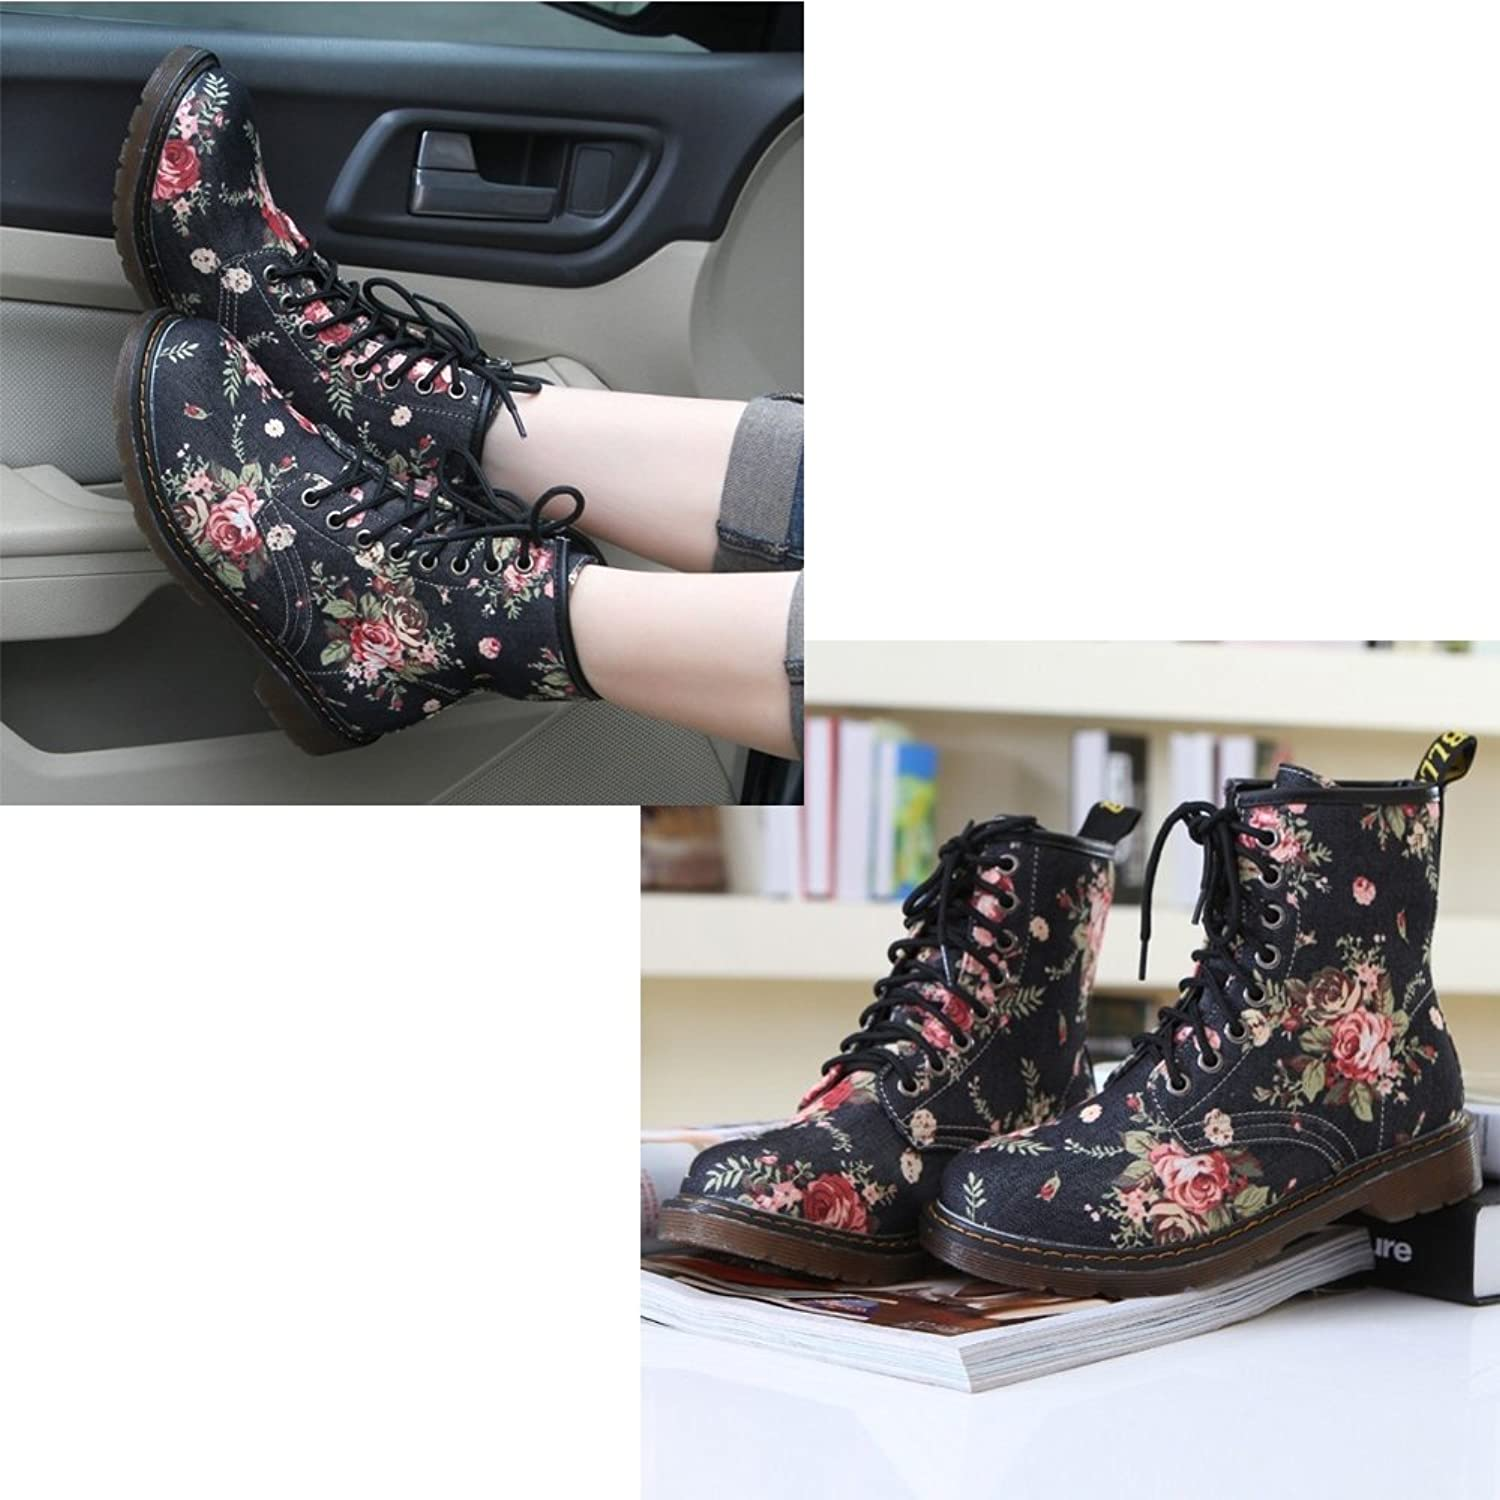 KINDOYO Womens Girls Floral Winter Ankle Boots Fashion Short Lace-Up Flat  Shoes High Top Martin Trainers Sneakers, Black: Amazon.co.uk: Shoes & Bags